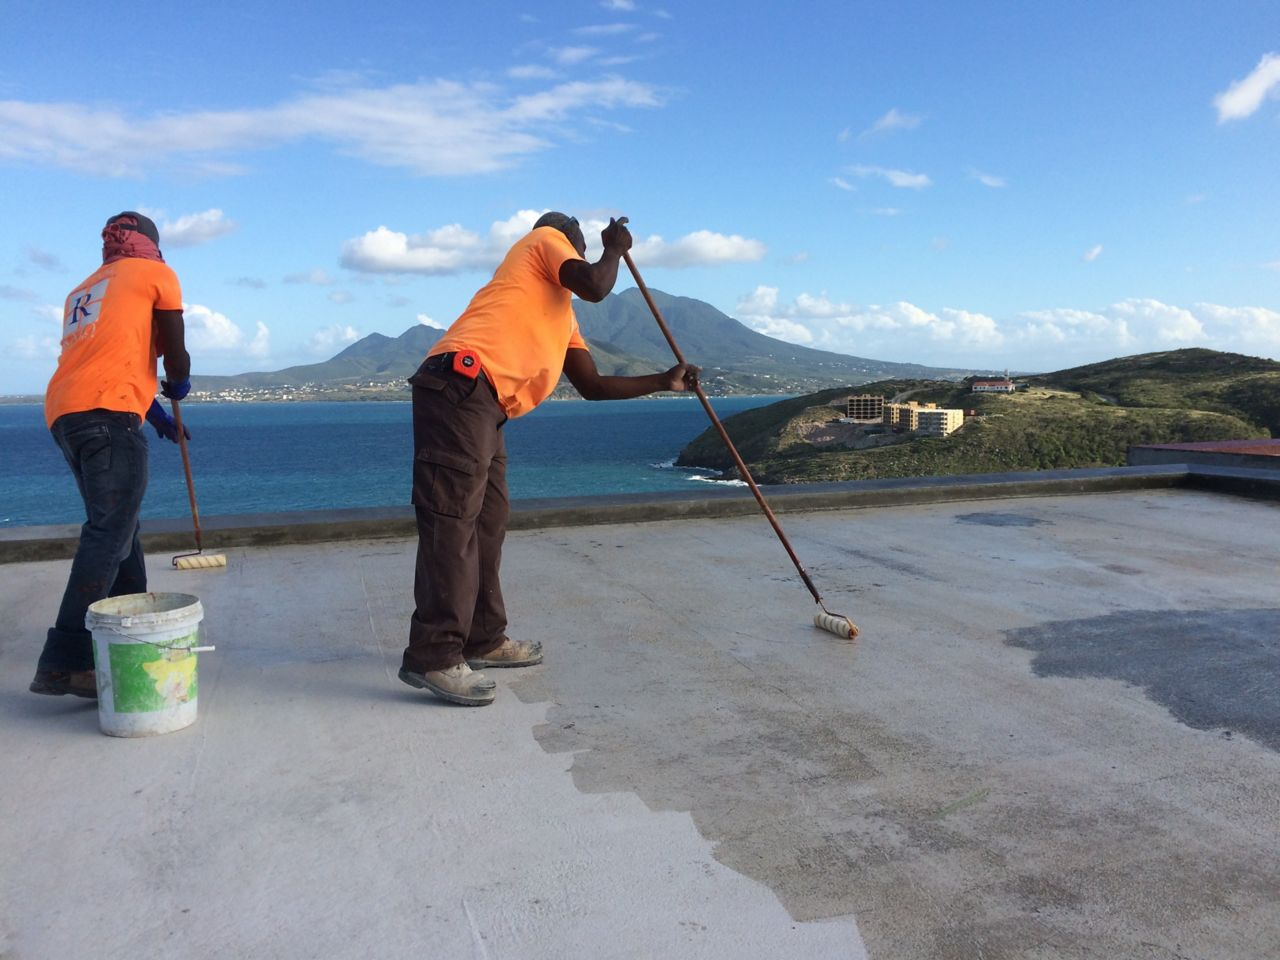 Concrete primer being applied on roof